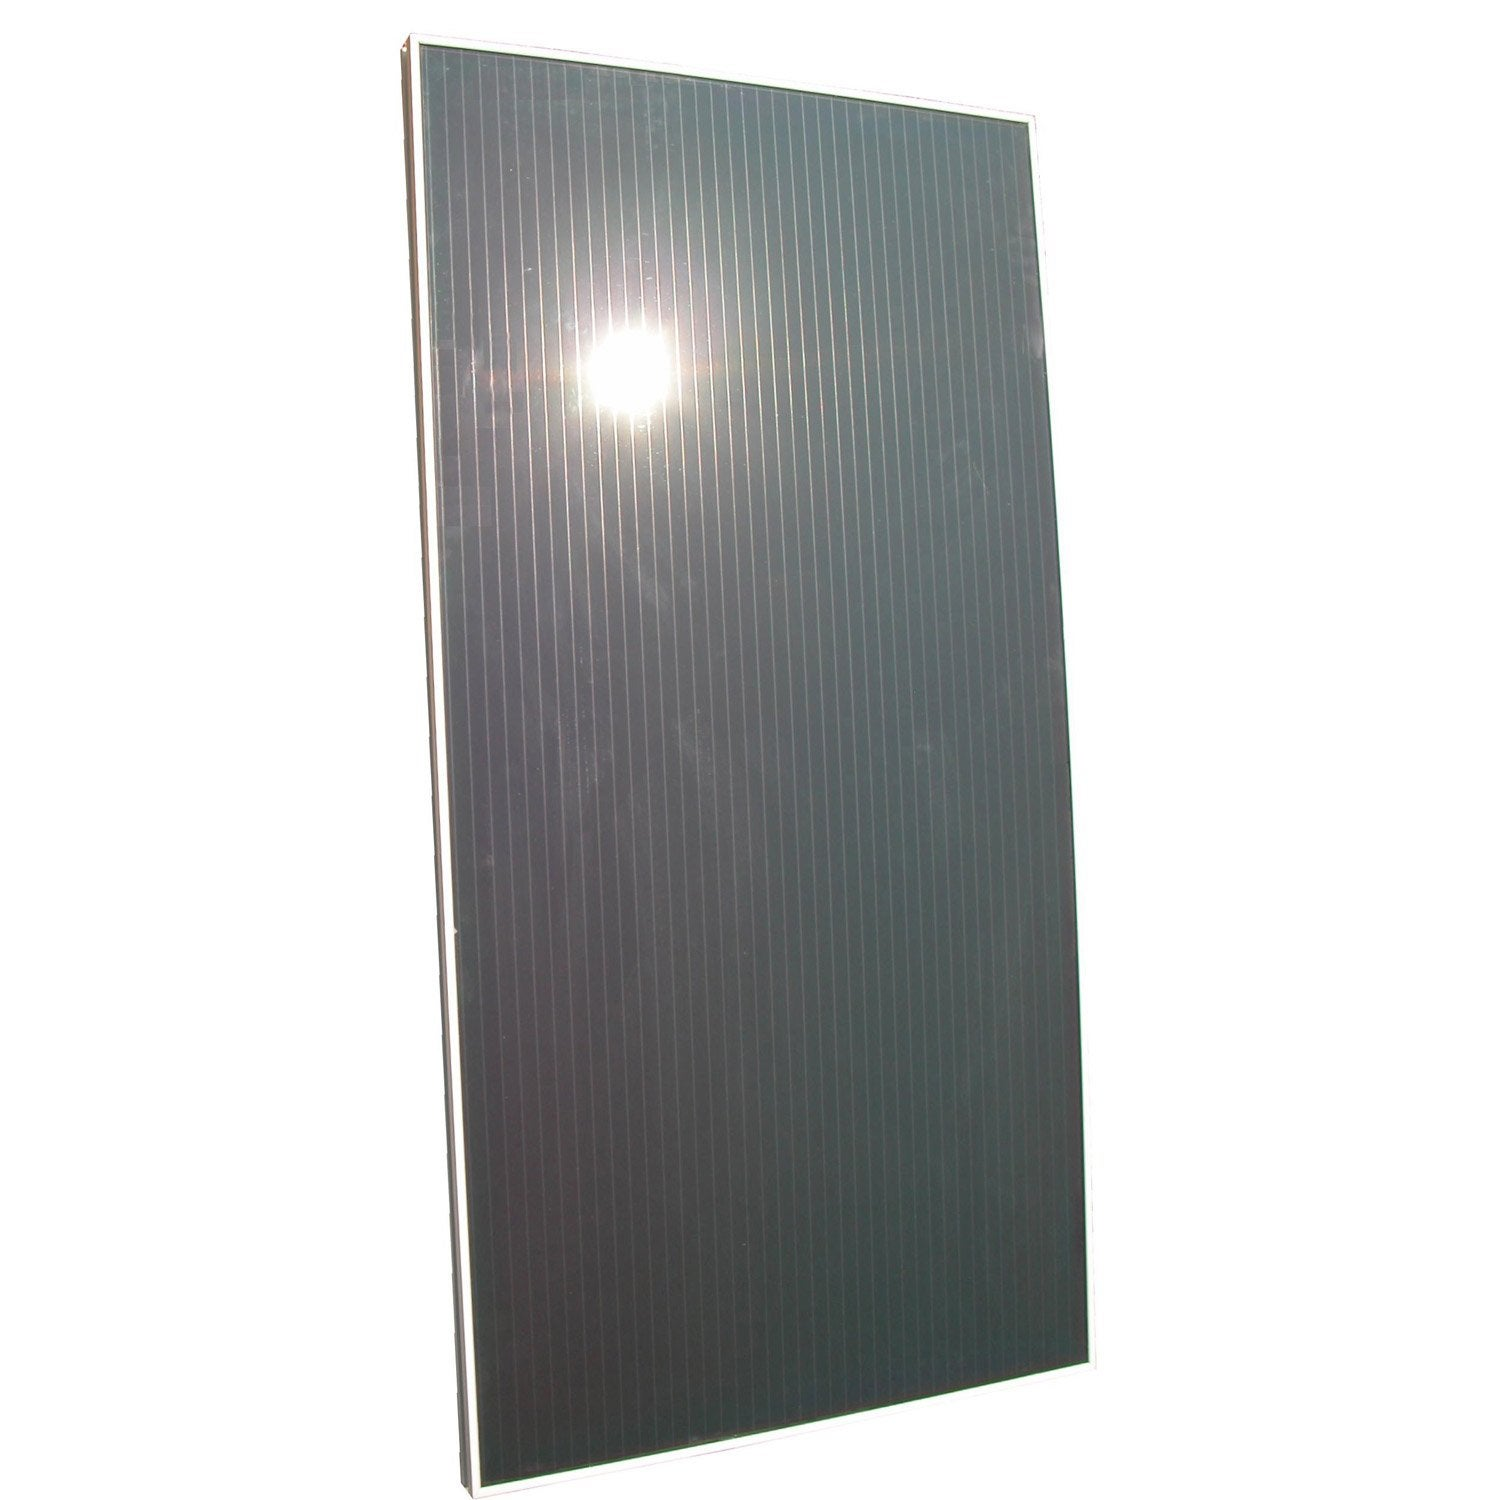 Chargeur Solaire Leroy Merlin